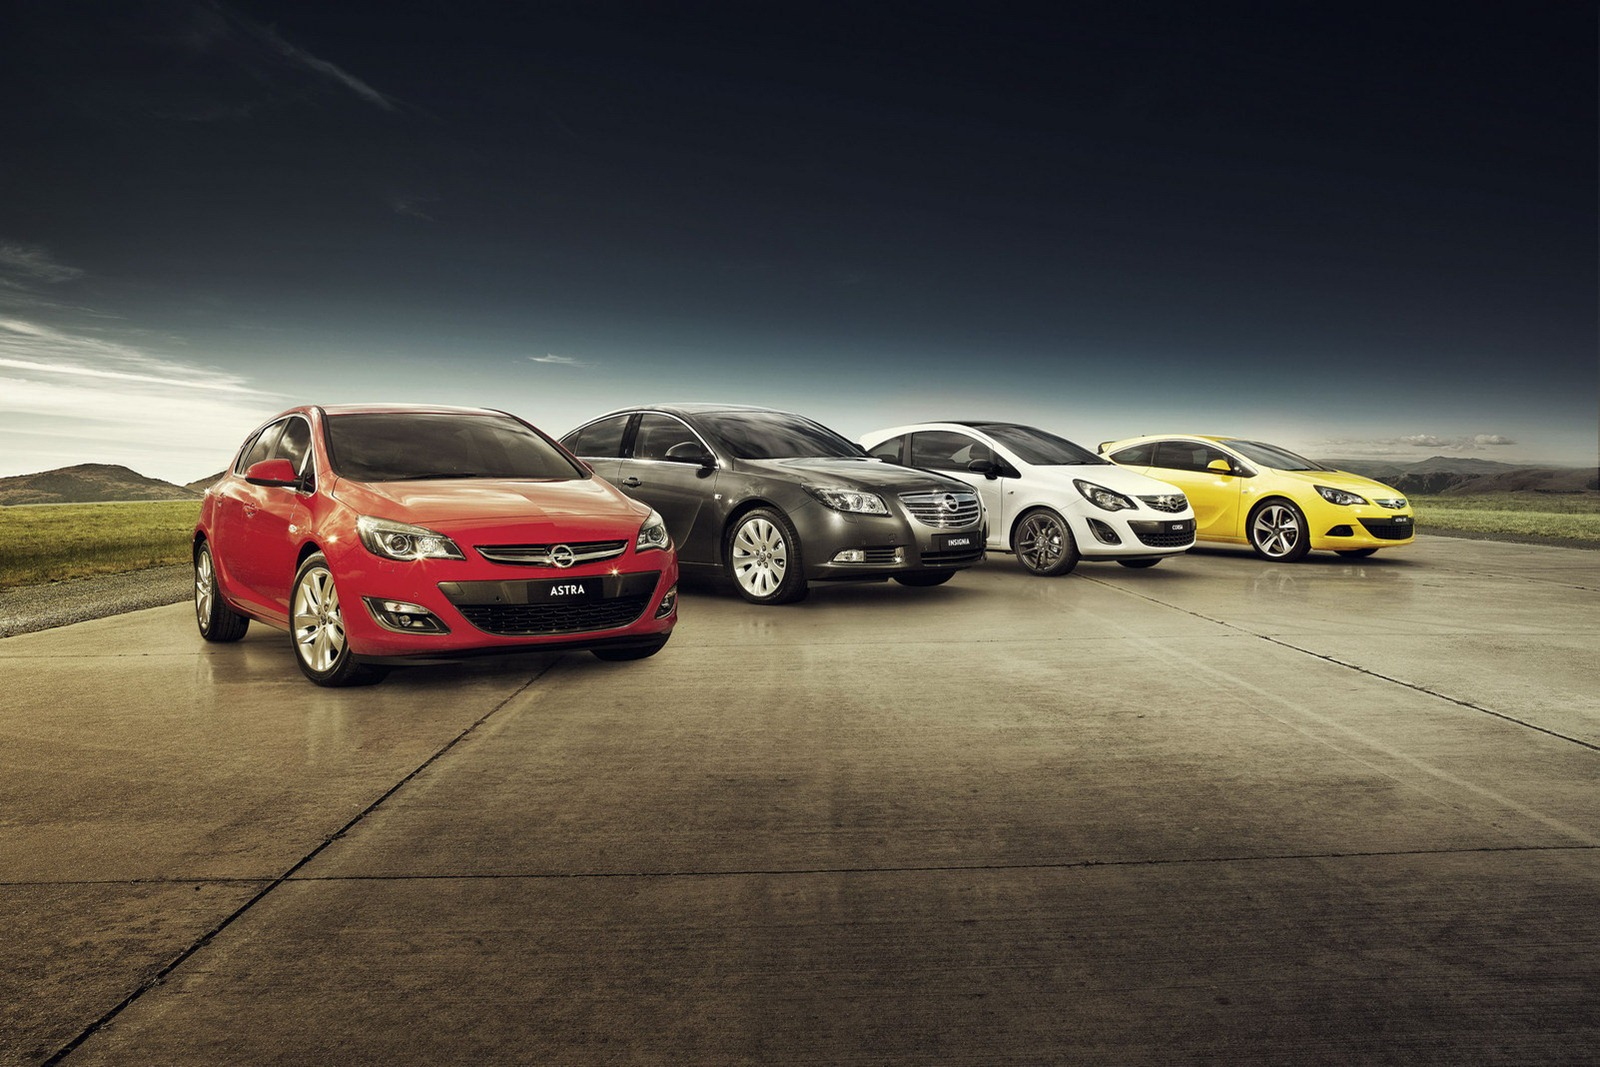 Opel cars in australia